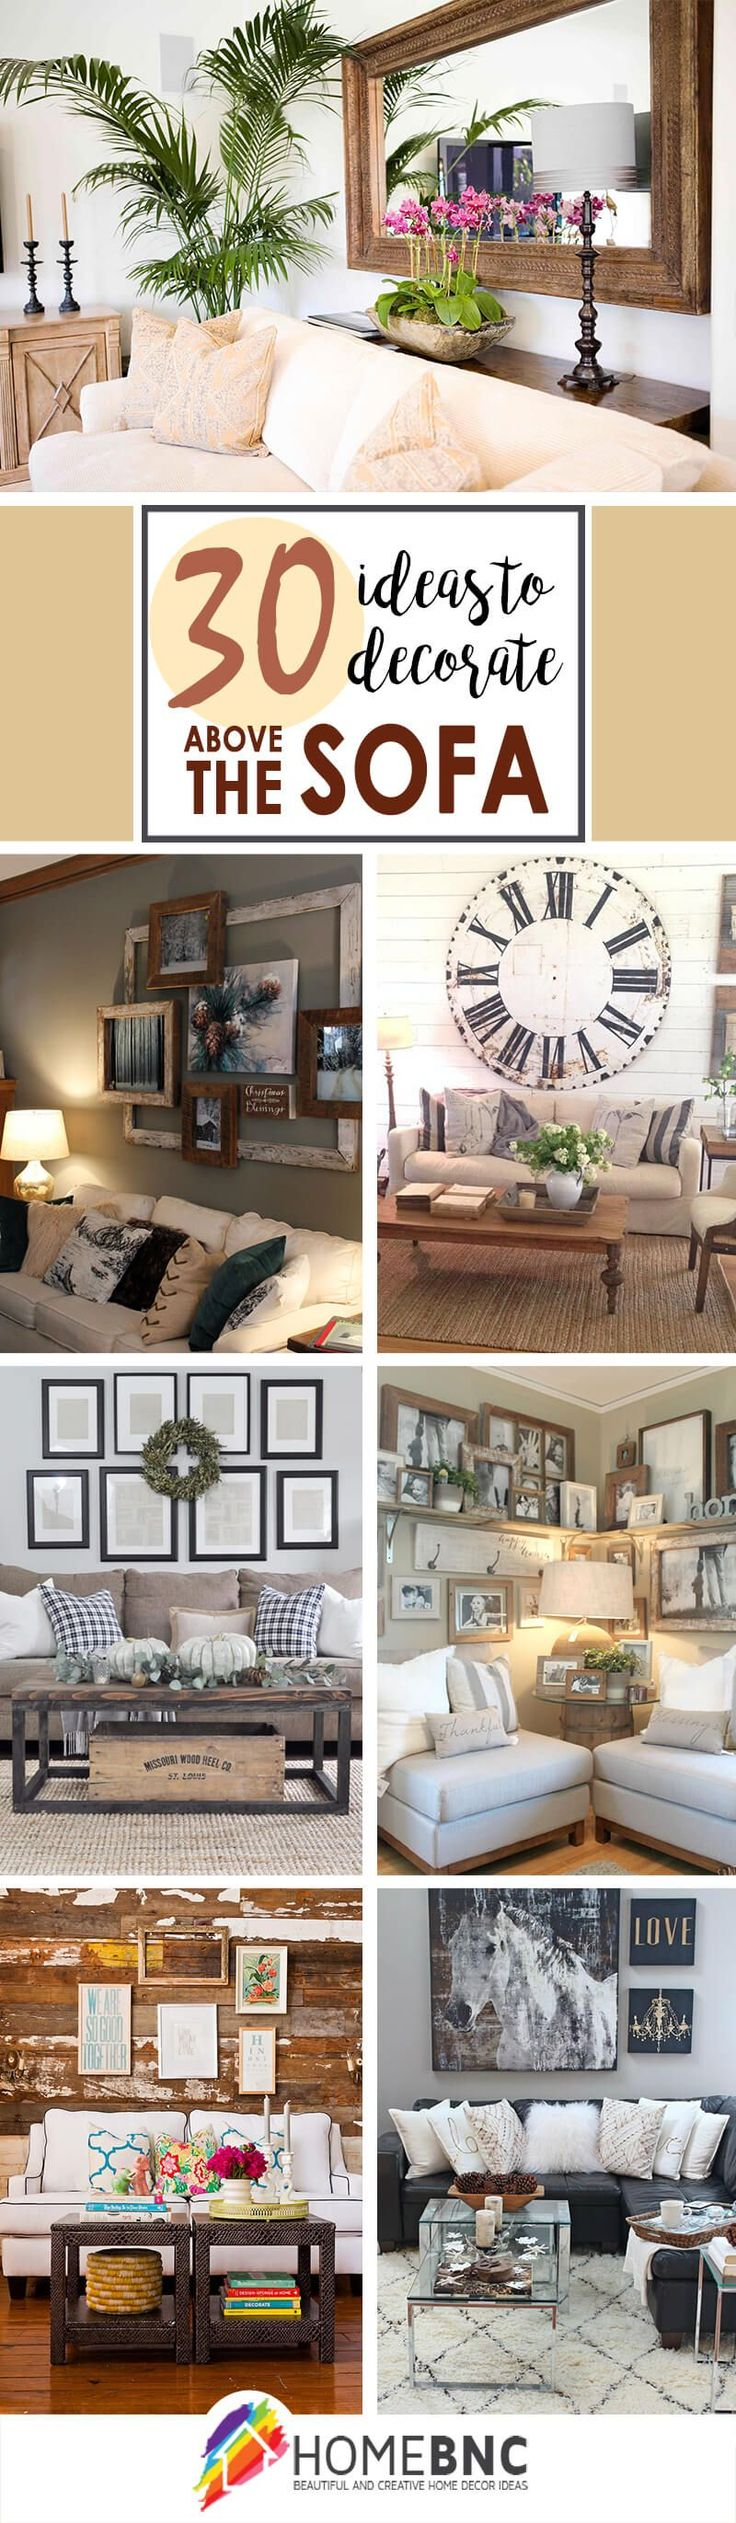 Best 25 Above Couch Decor Ideas On Pinterest Mirror: over the sofa wall decor ideas